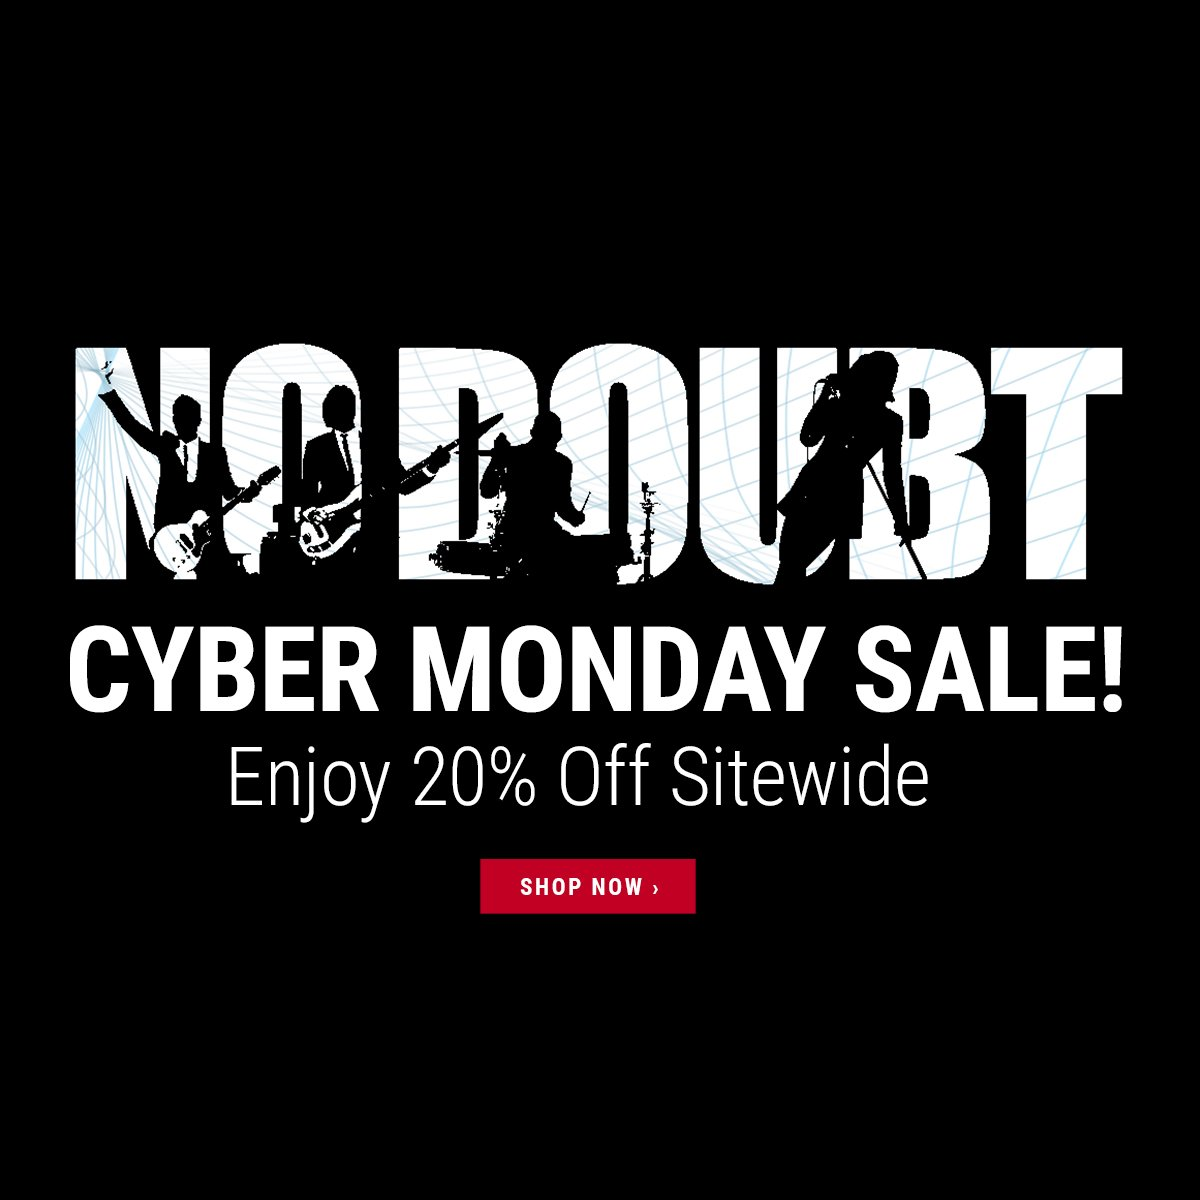 Get 20% off storewide today at https://t.co/dPPUFXEt4G! #CyberMonday https://t.co/C5i9NnPaa2